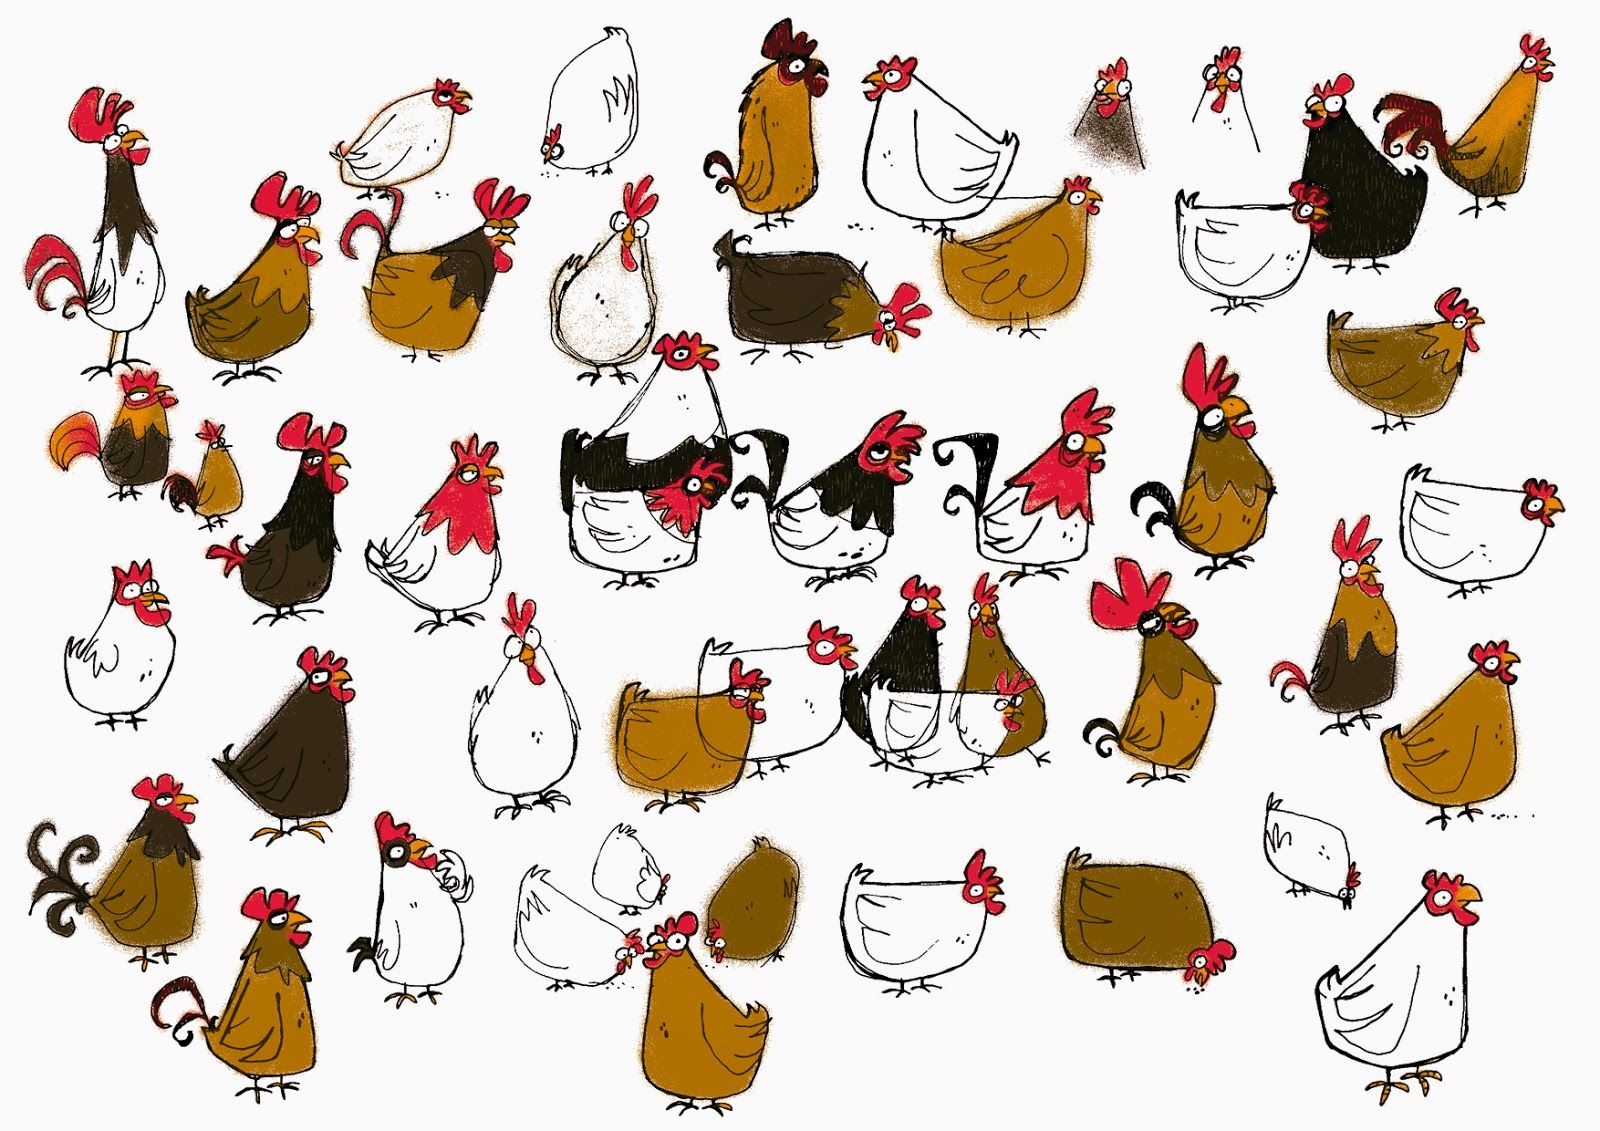 F parme design graphique dessin cartoon poule dessin coq dessin et dessin cartoon - Poules dessin ...